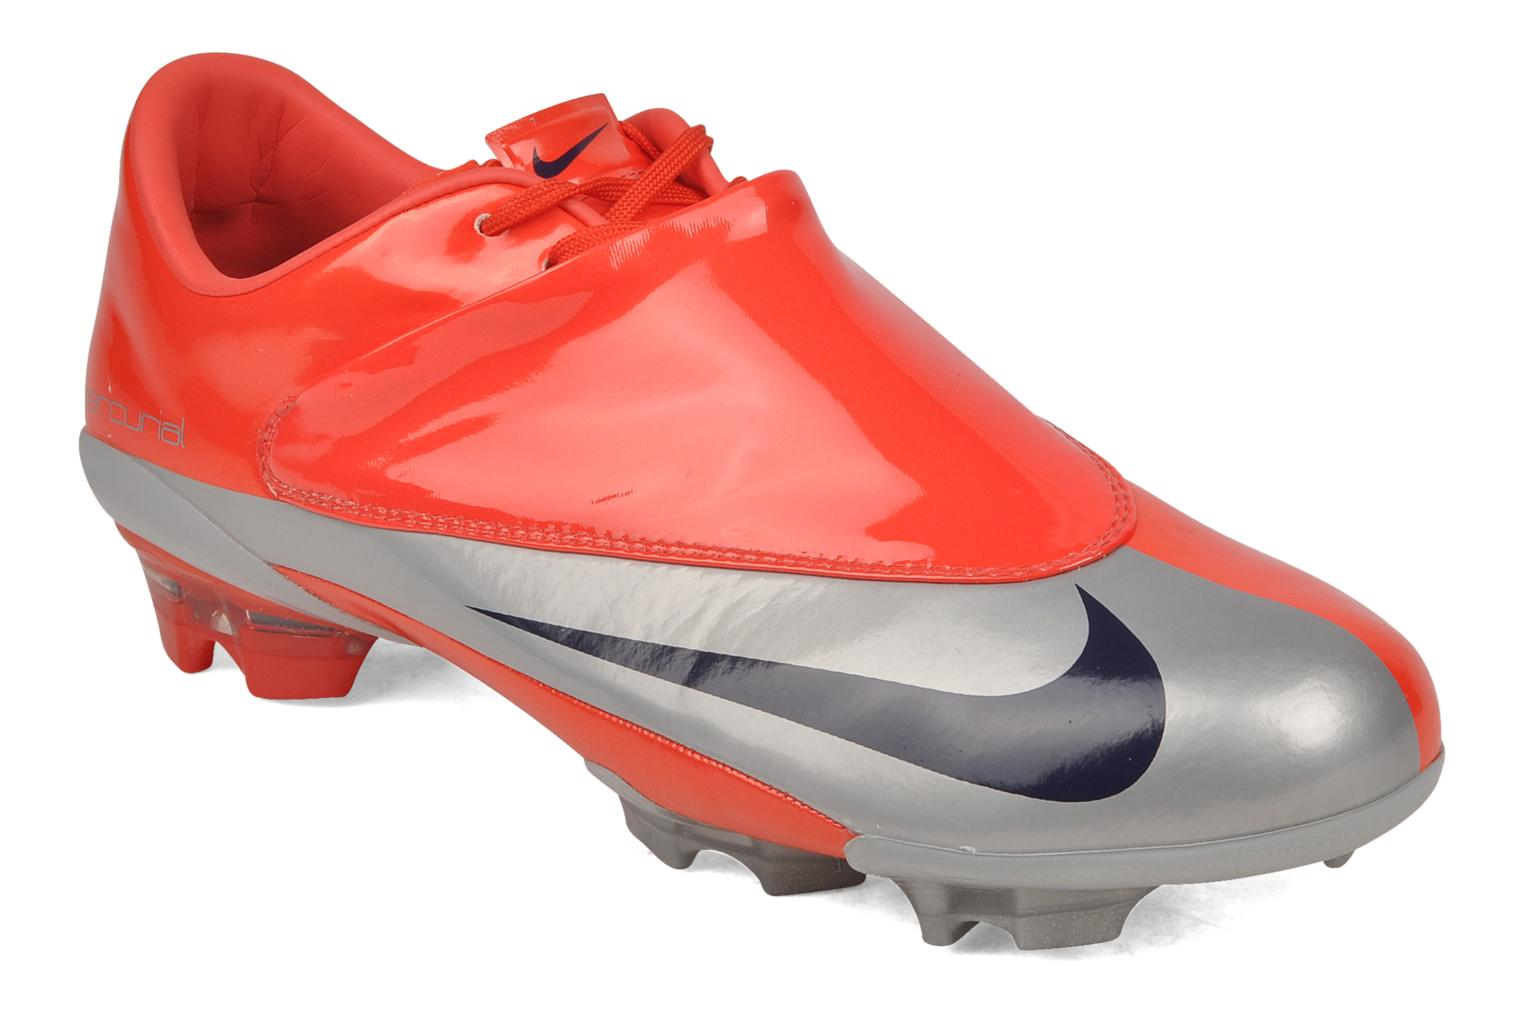 reputable site a86d5 a2871 nike mercurial 2010